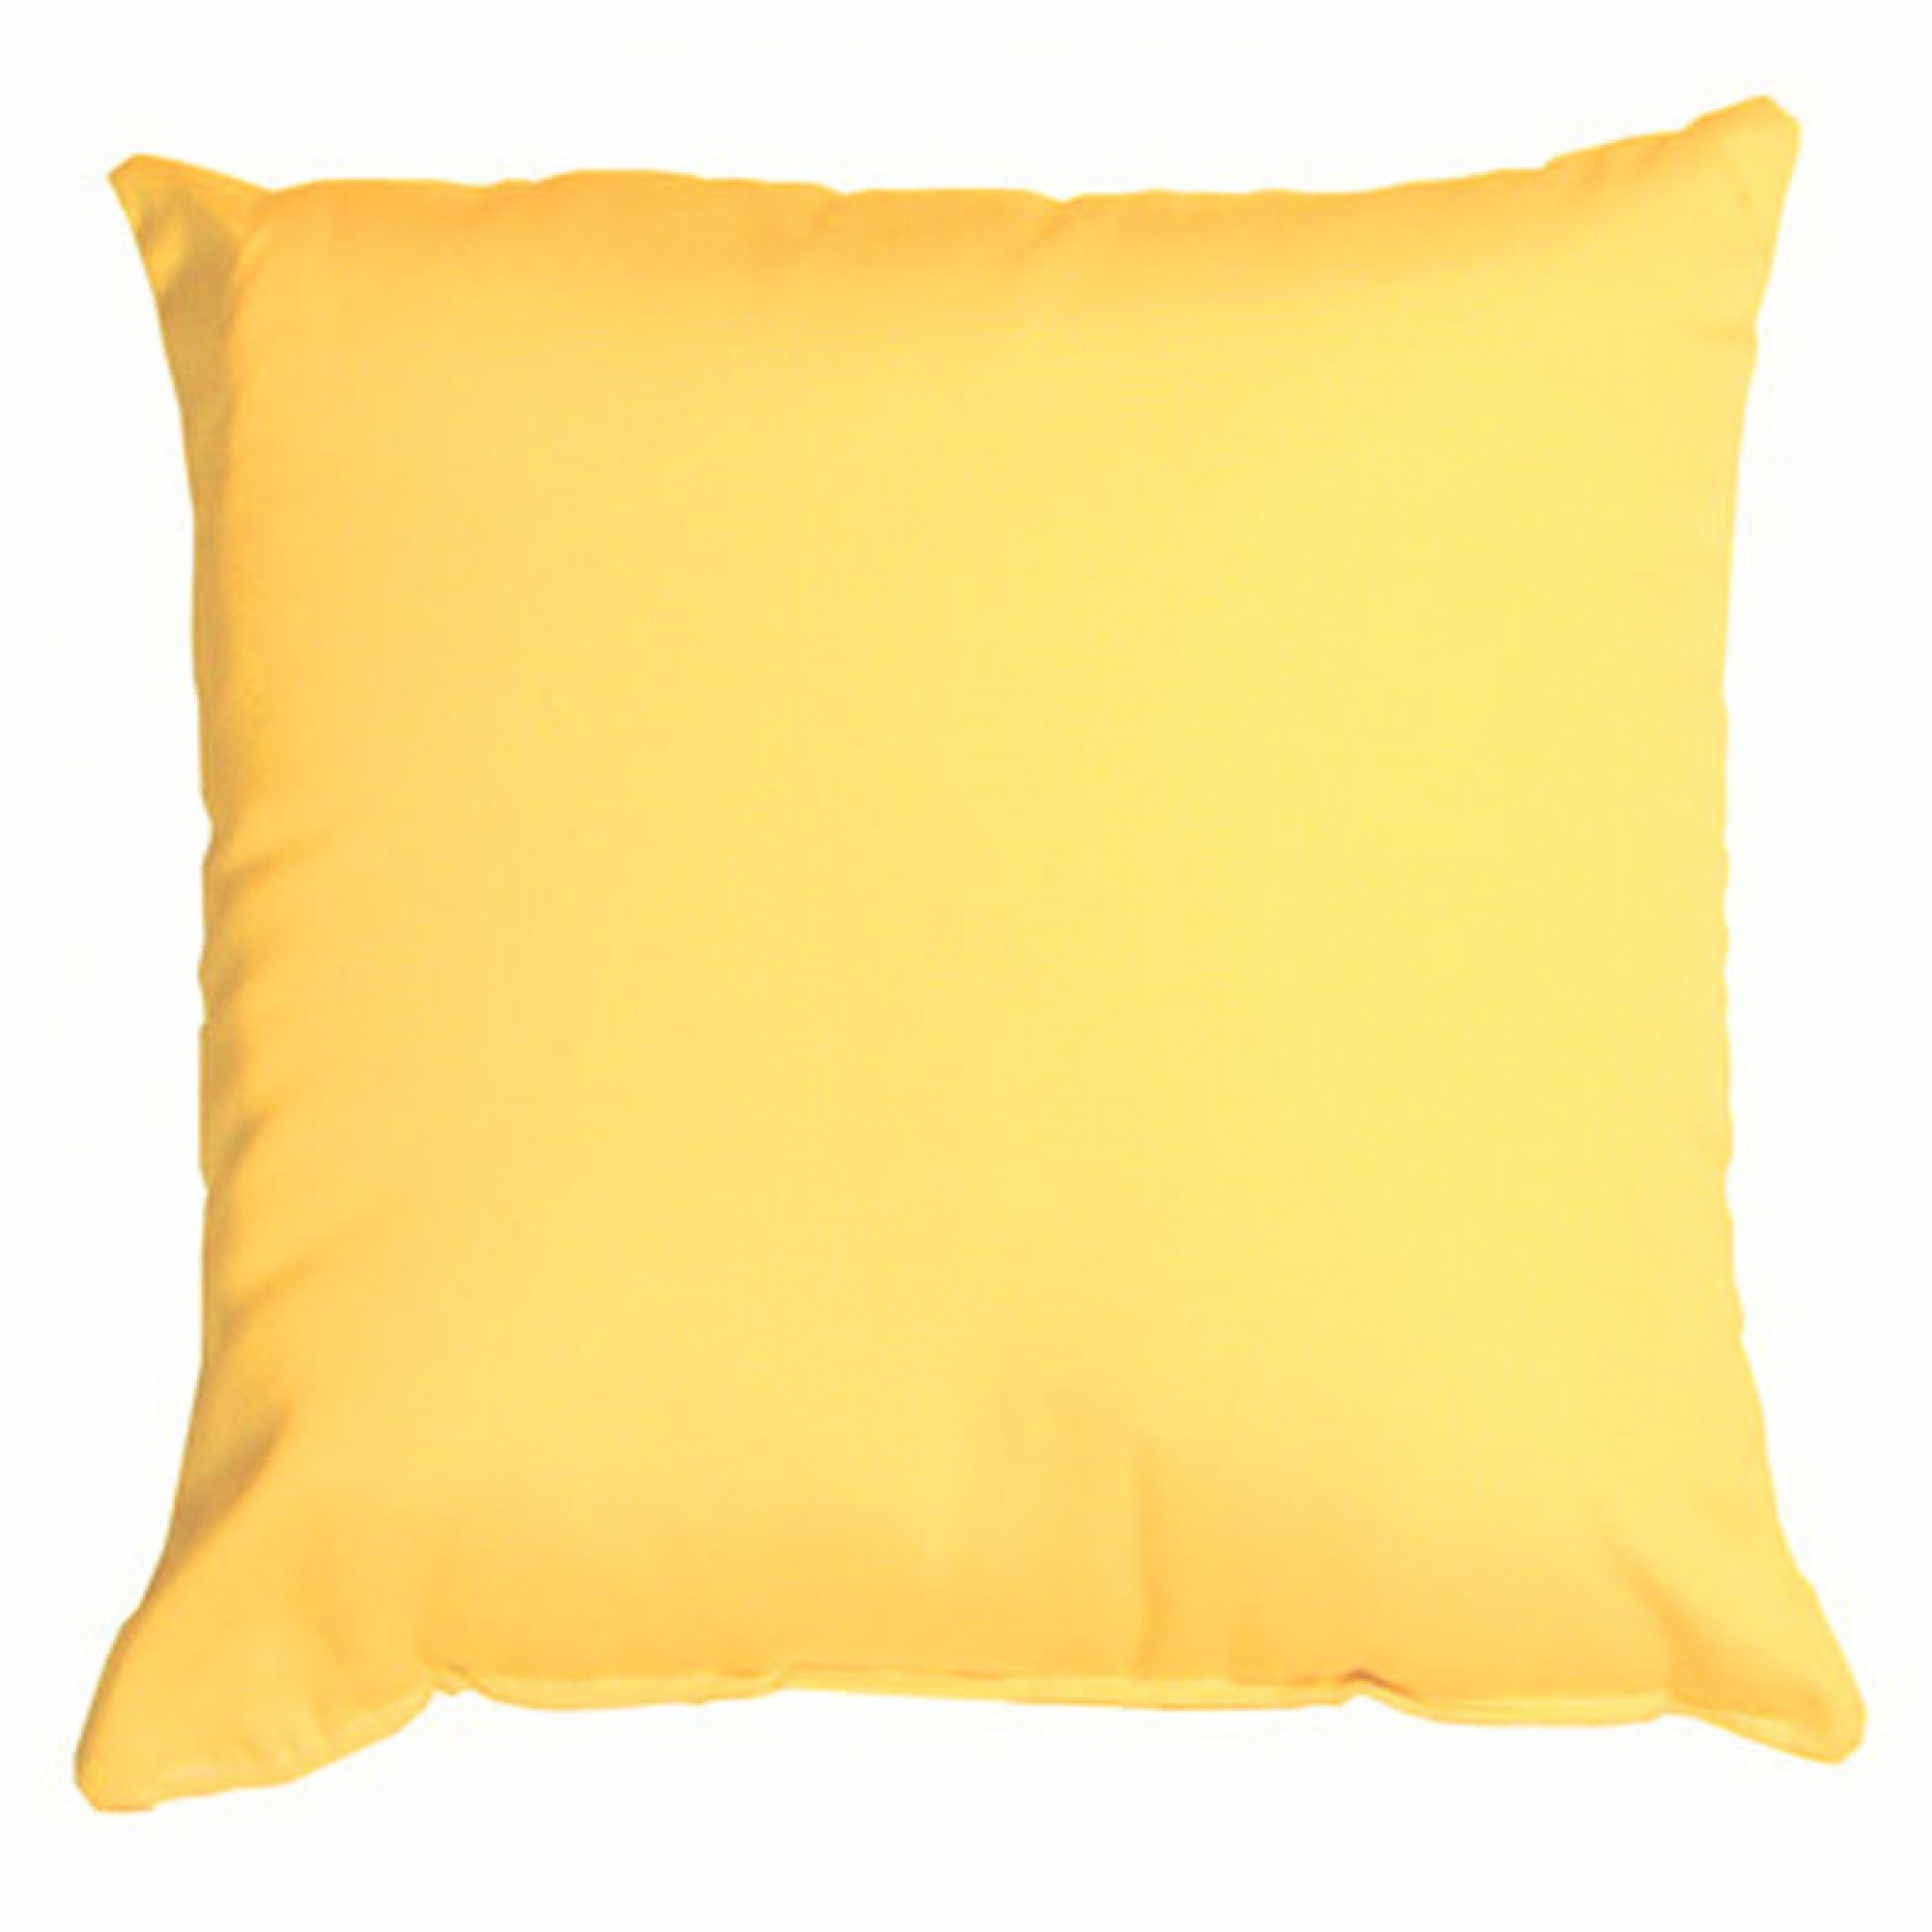 Throw Pillow Yellow : Shop Throw Pillow - Yellow - Essentials by DFO; Pillows; Outdoors dfohome.com DFOHome